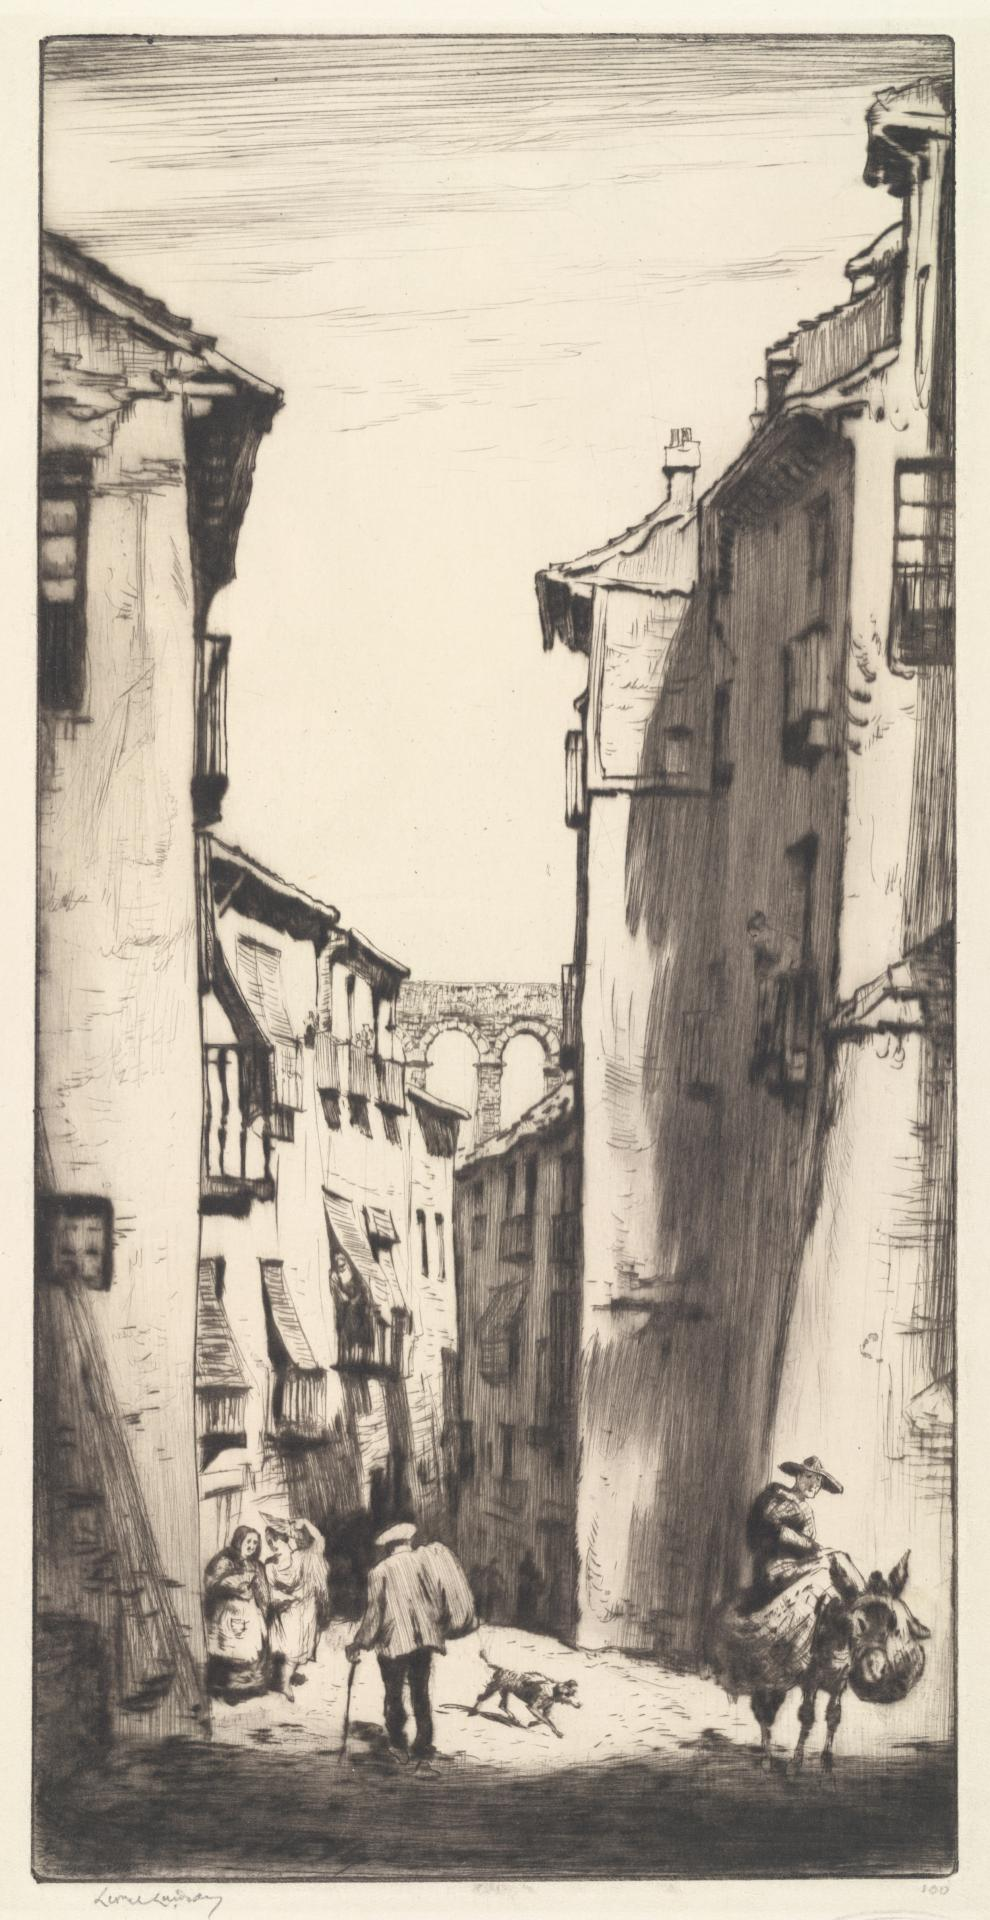 The Street of the Aquaduct, Segovia